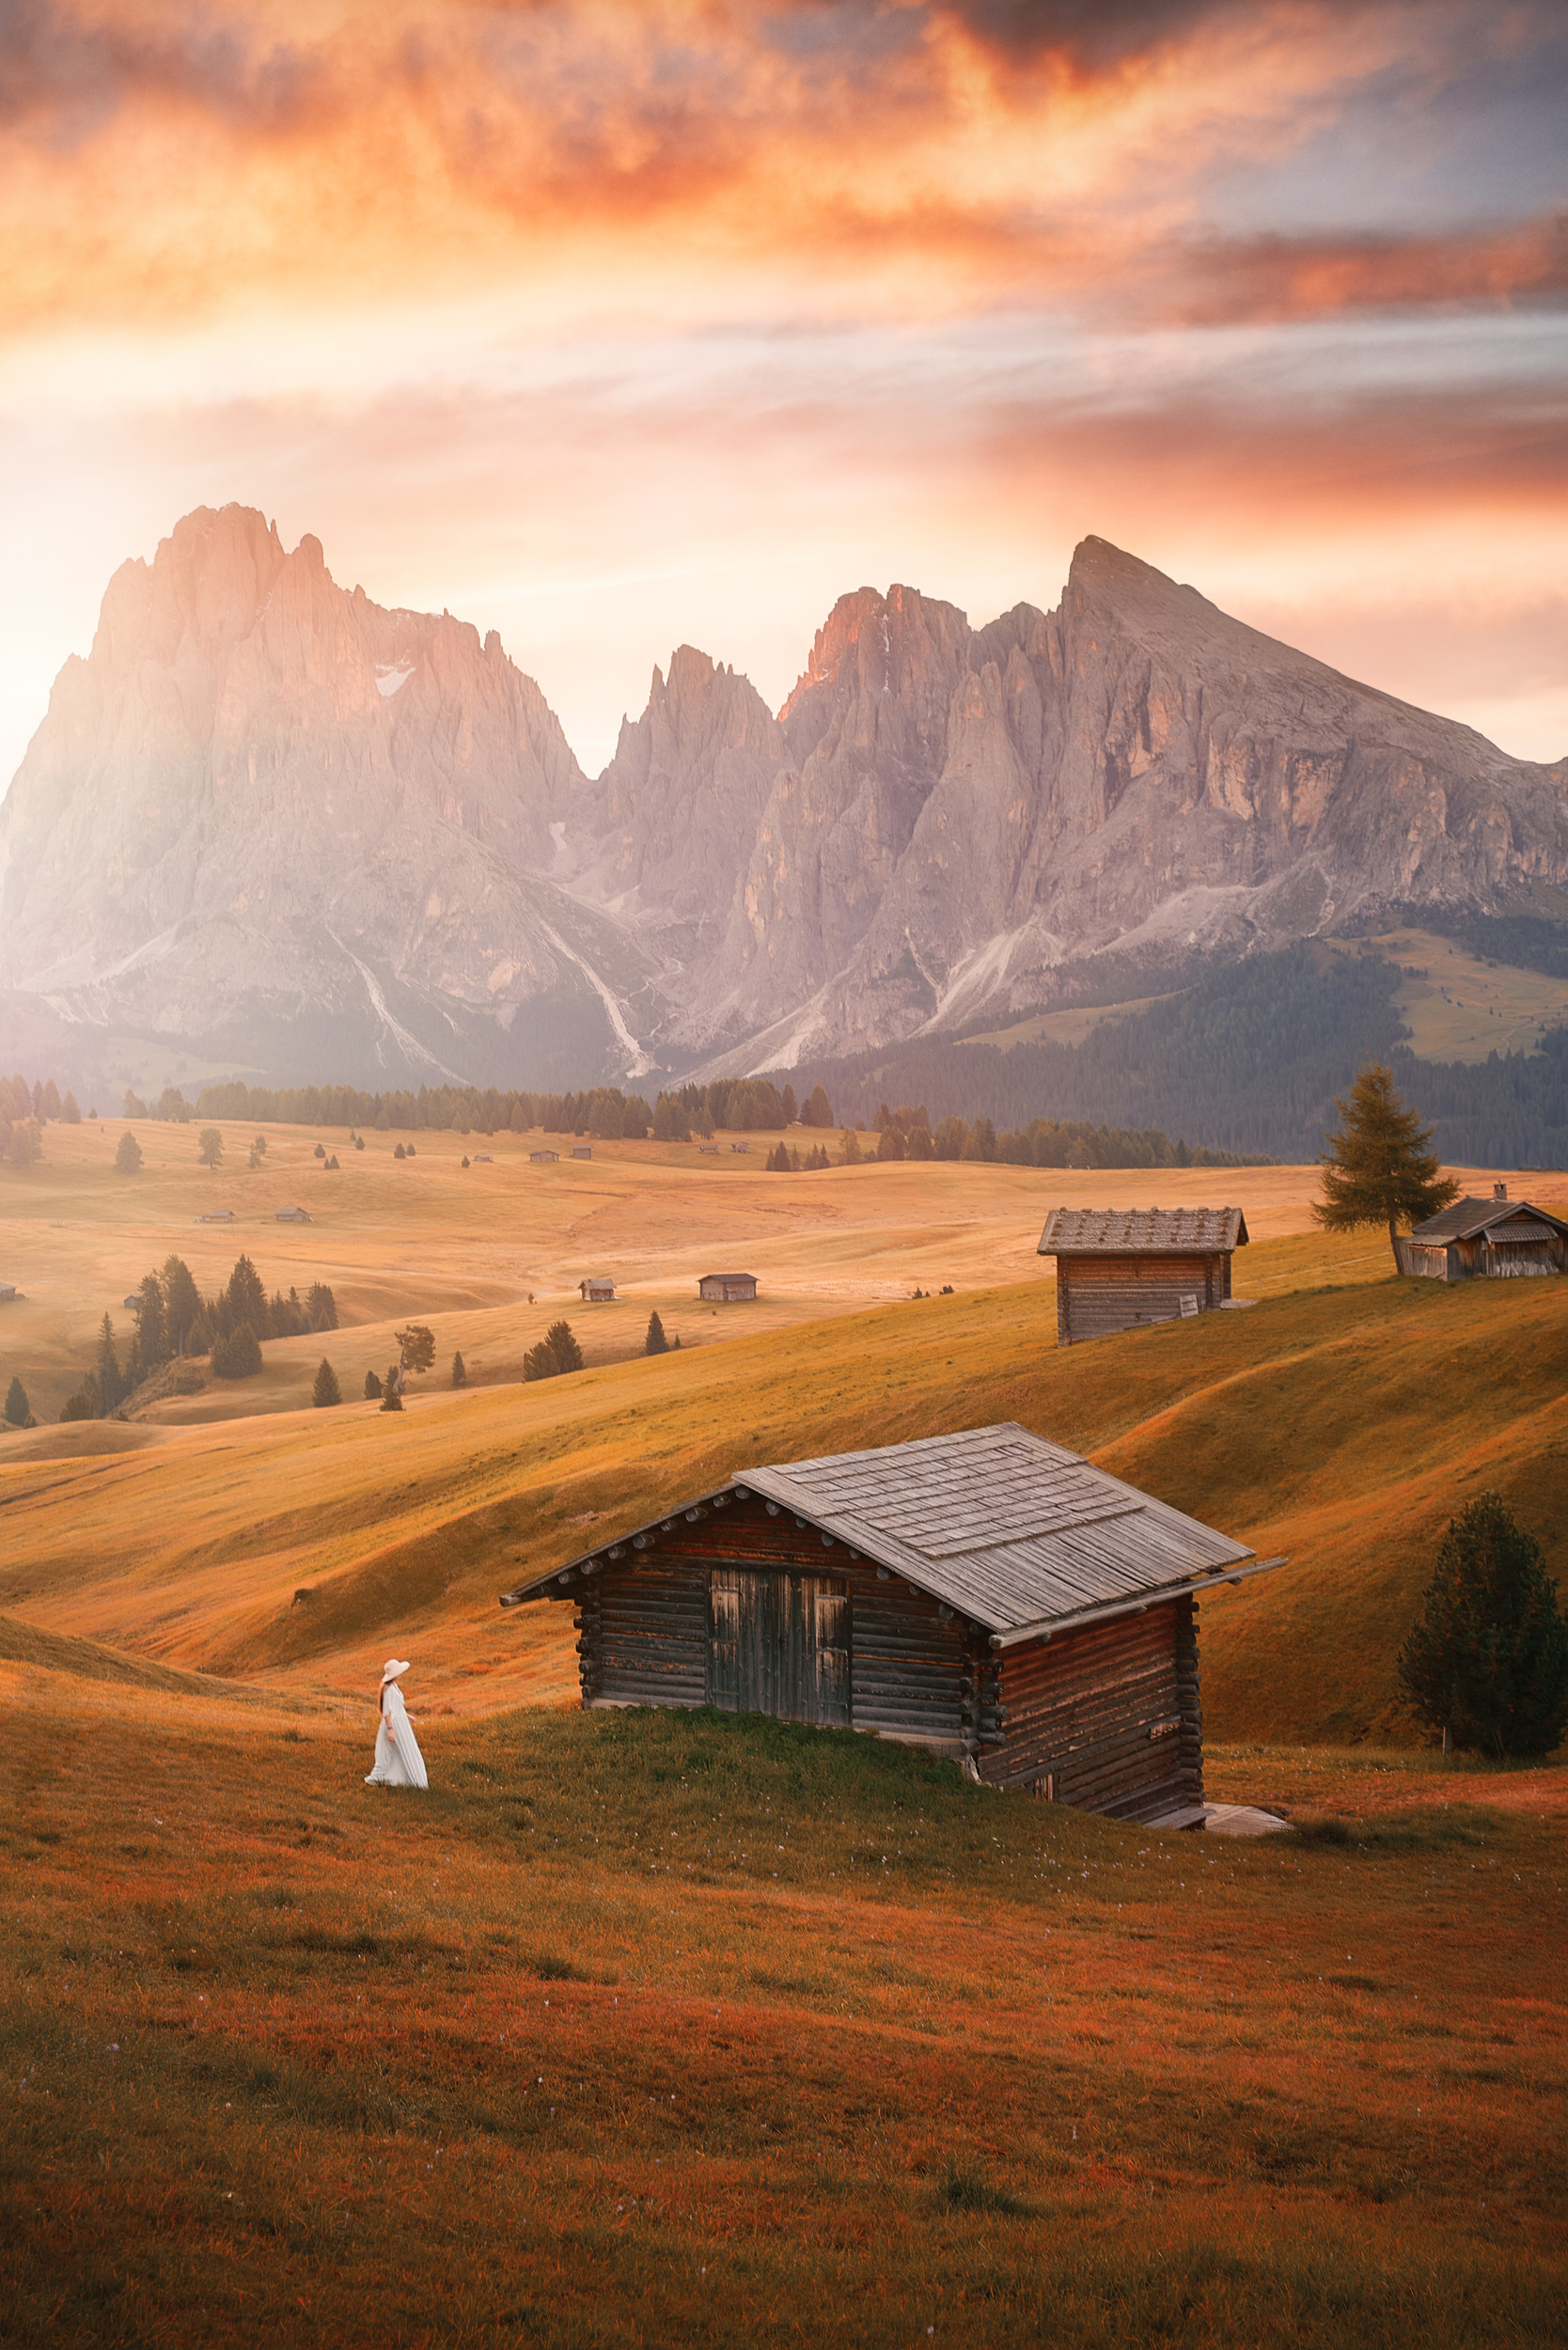 Picturesque Alpe Di Siusi situated up in the famous Dolomites hiking area.